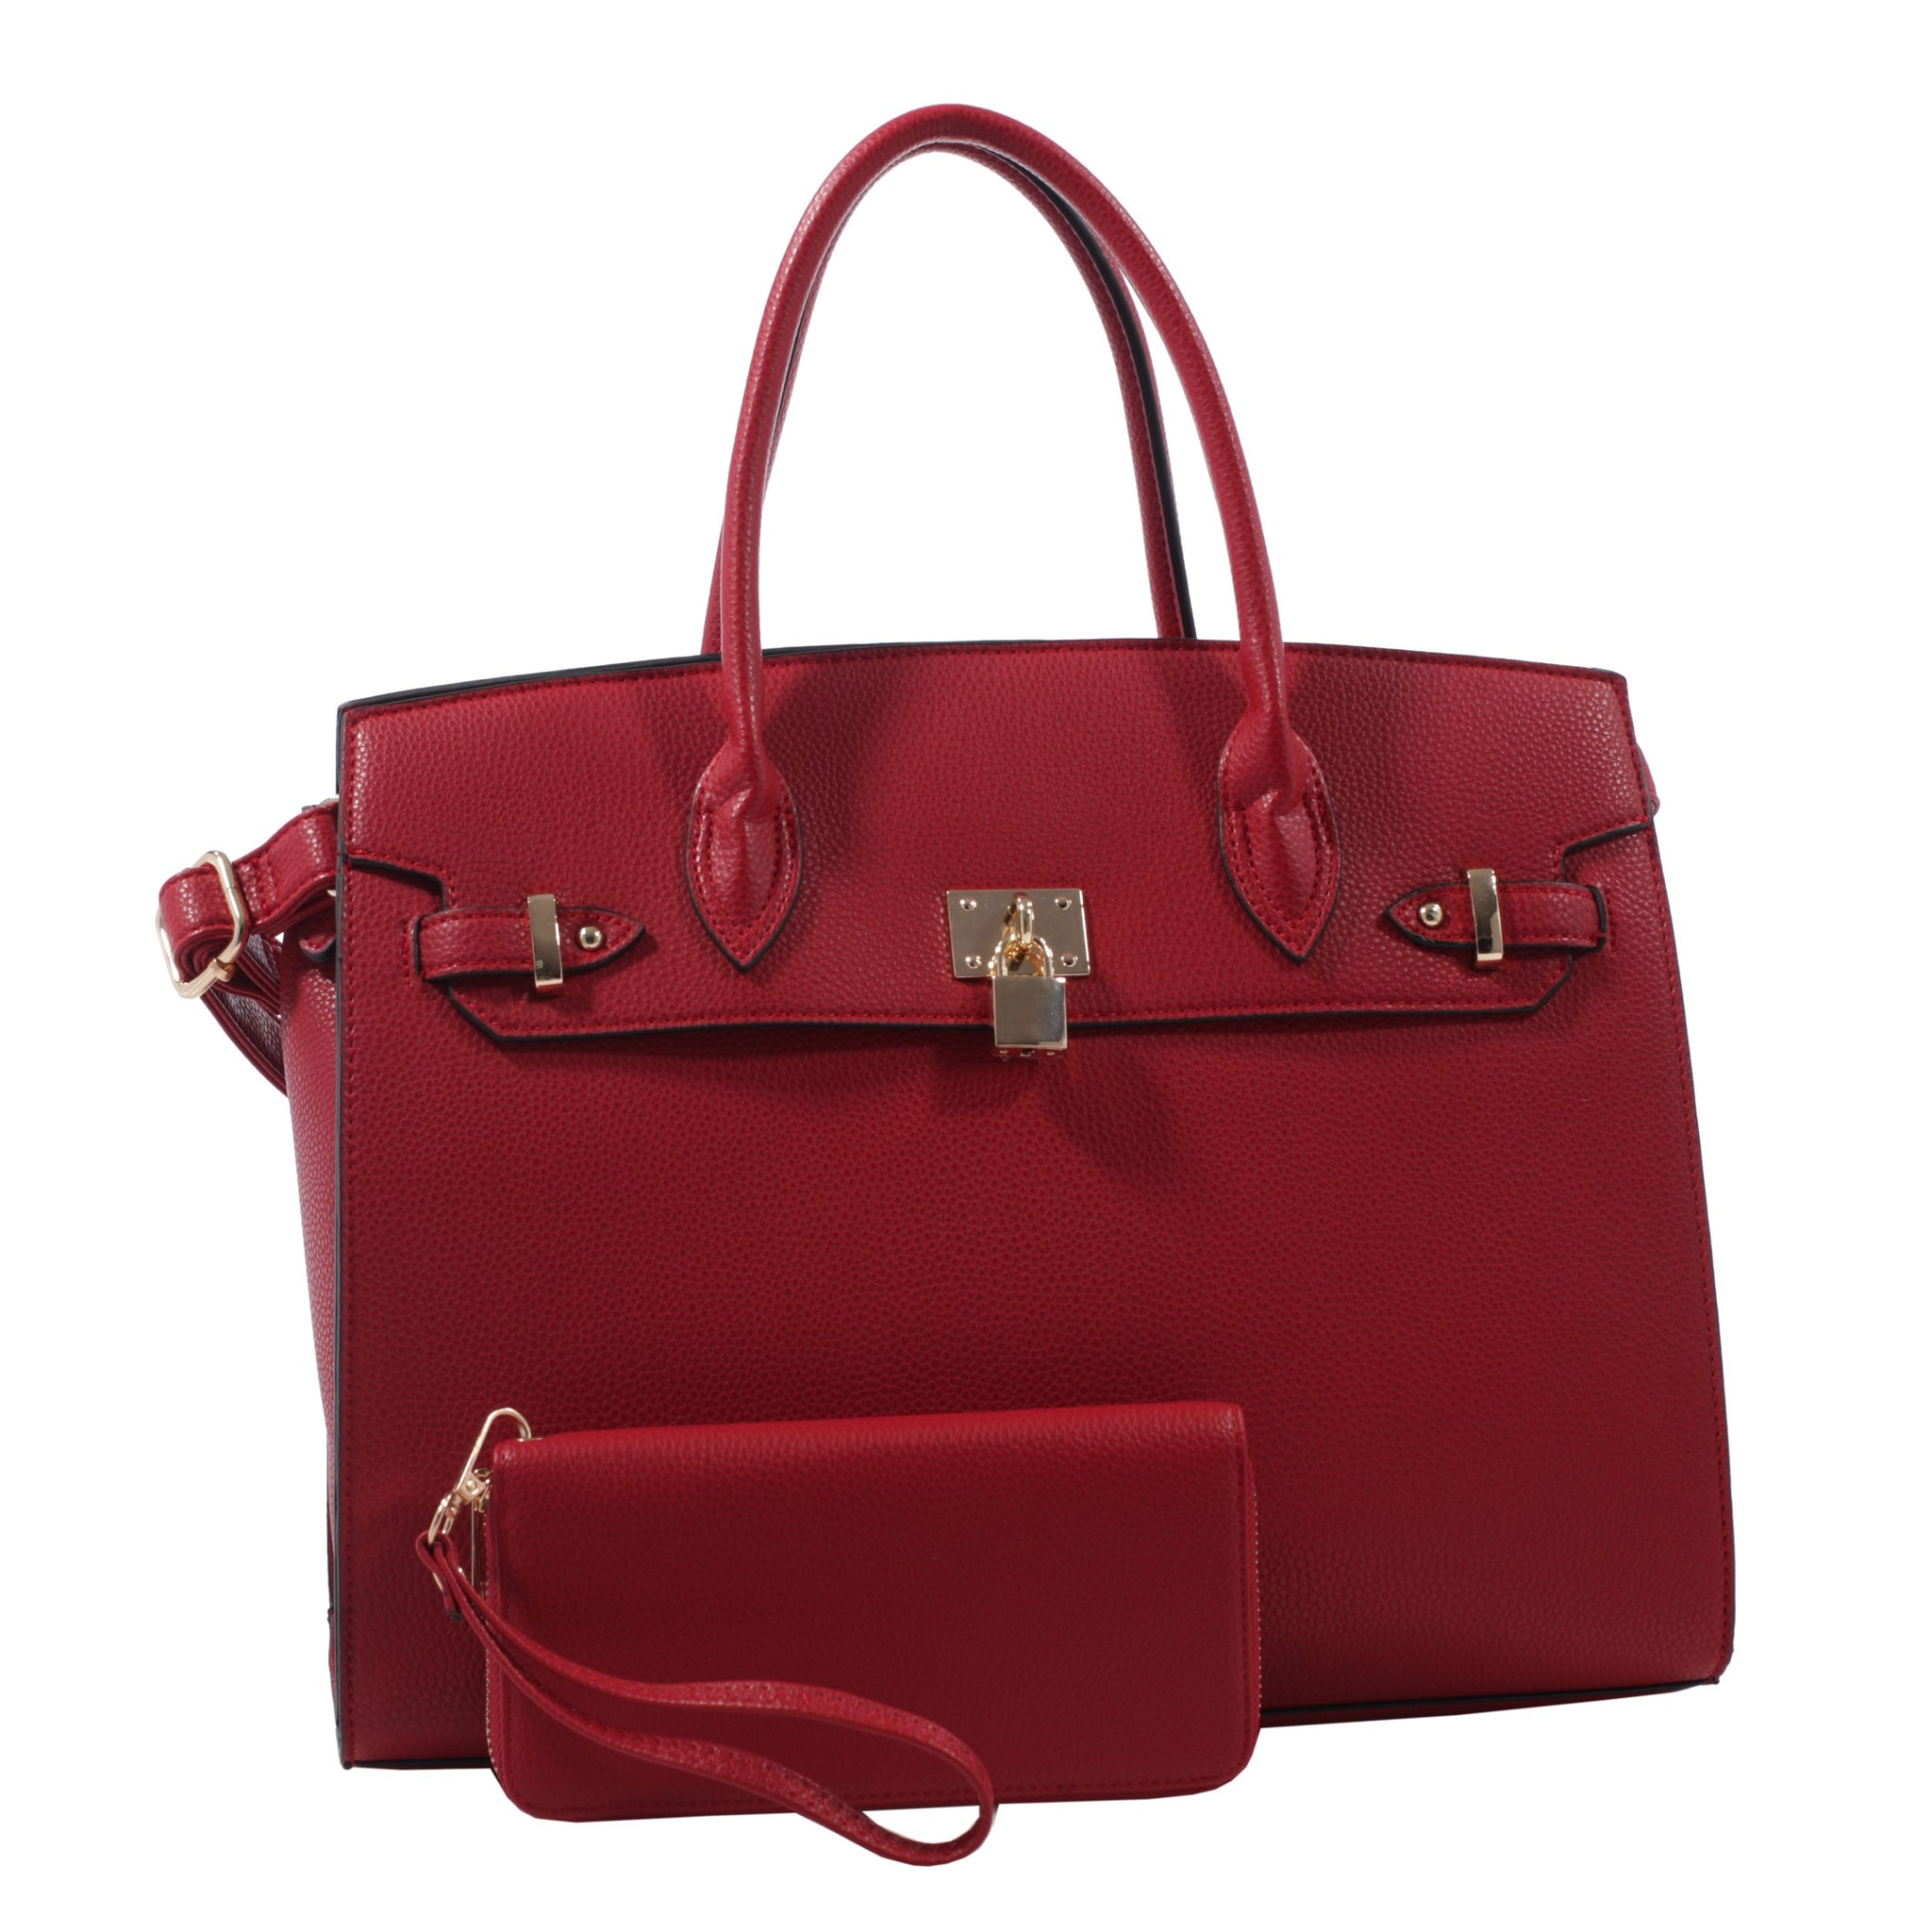 PADLOCK SATCHEL - RED